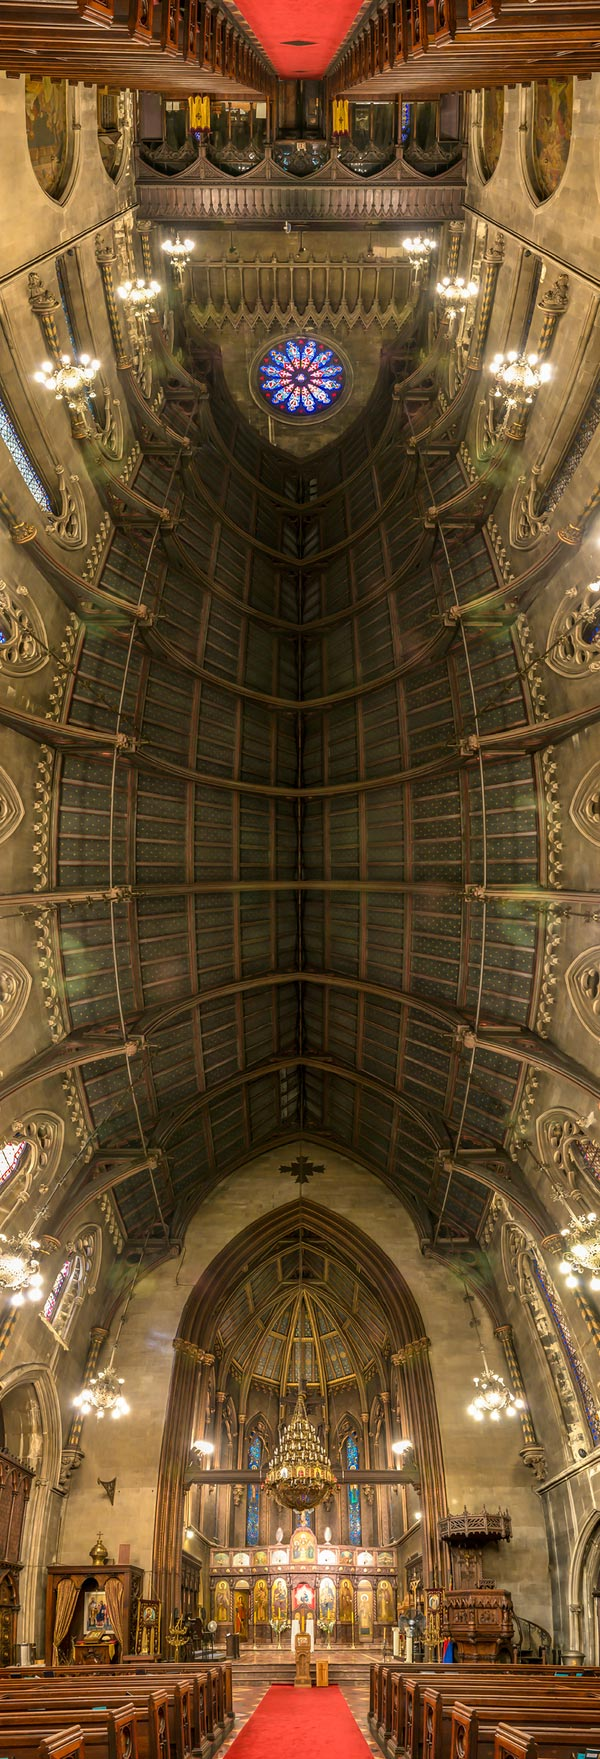 vertical panoramas of church ceilings 6 Amazing Vertical Panoramas of Church Ceilings